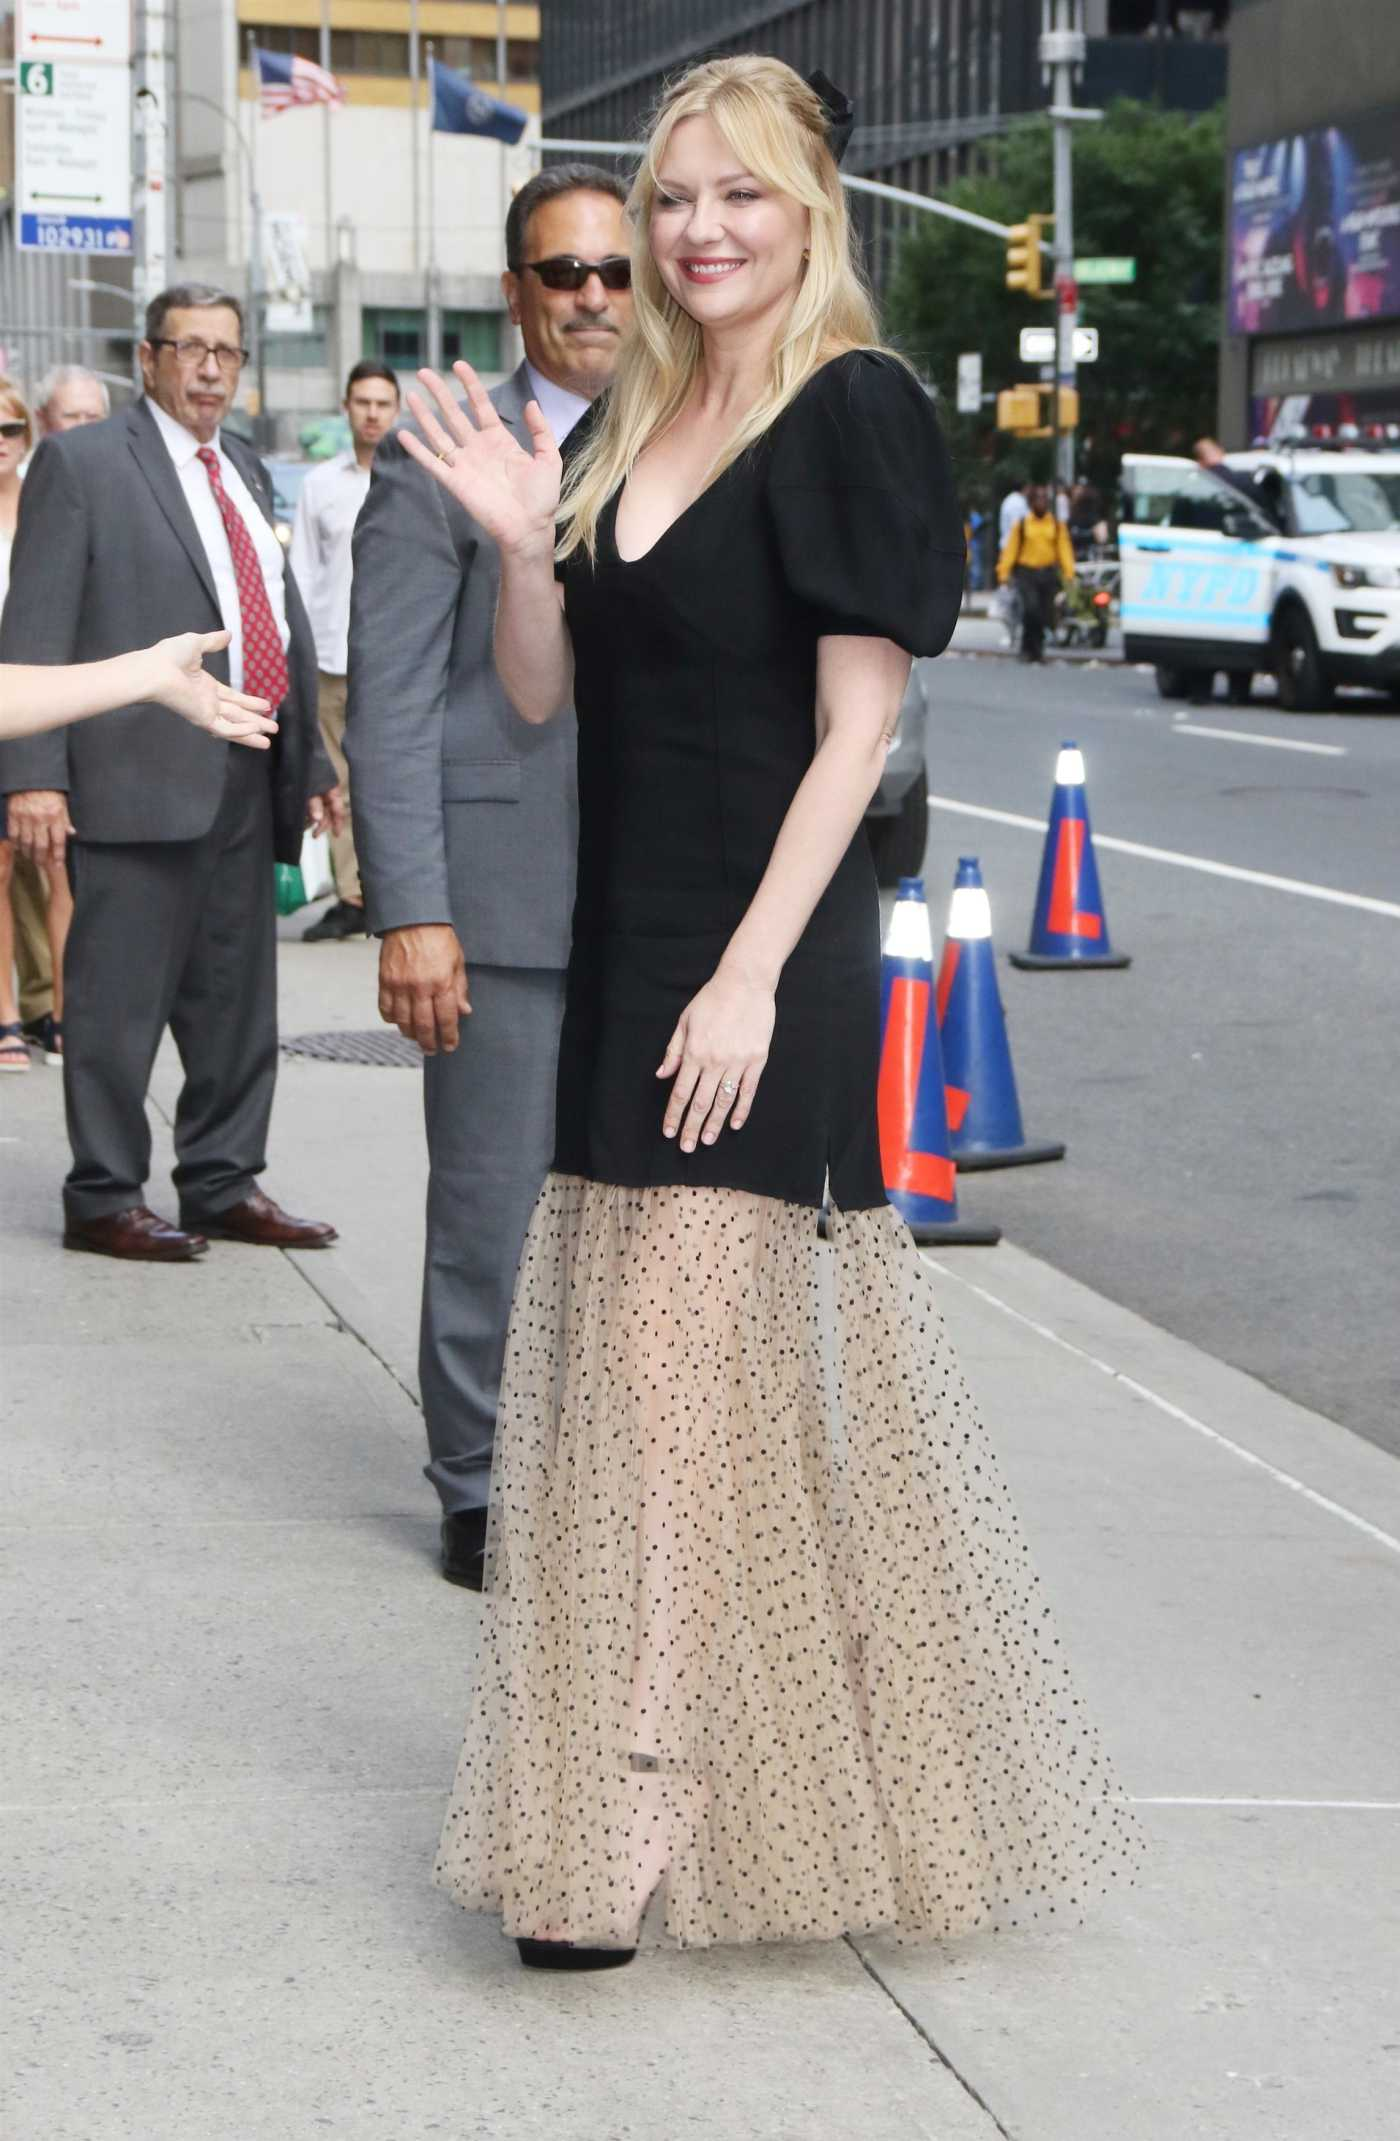 Kirsten Dunst in a Black Blouse Arrives at The Late Show with Stephen Colbert in New York 08/15/2019